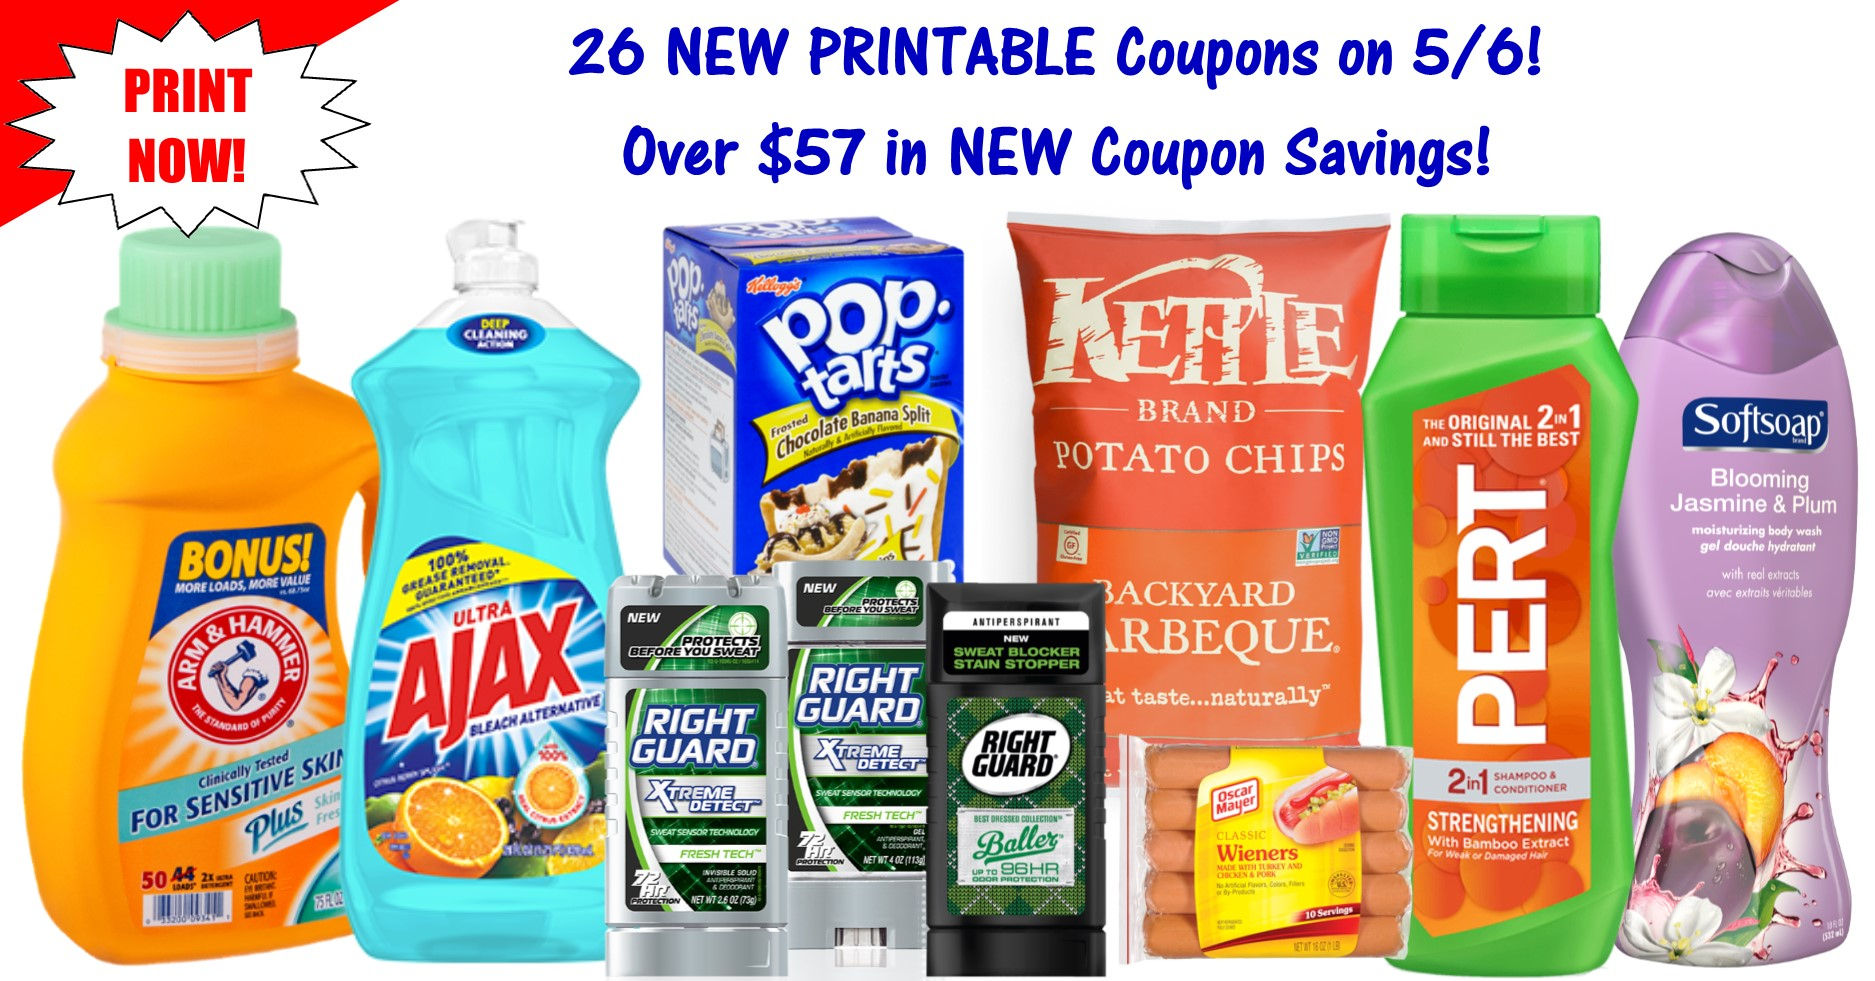 38 New Printable Coupons - Free Printable Chinet Coupons